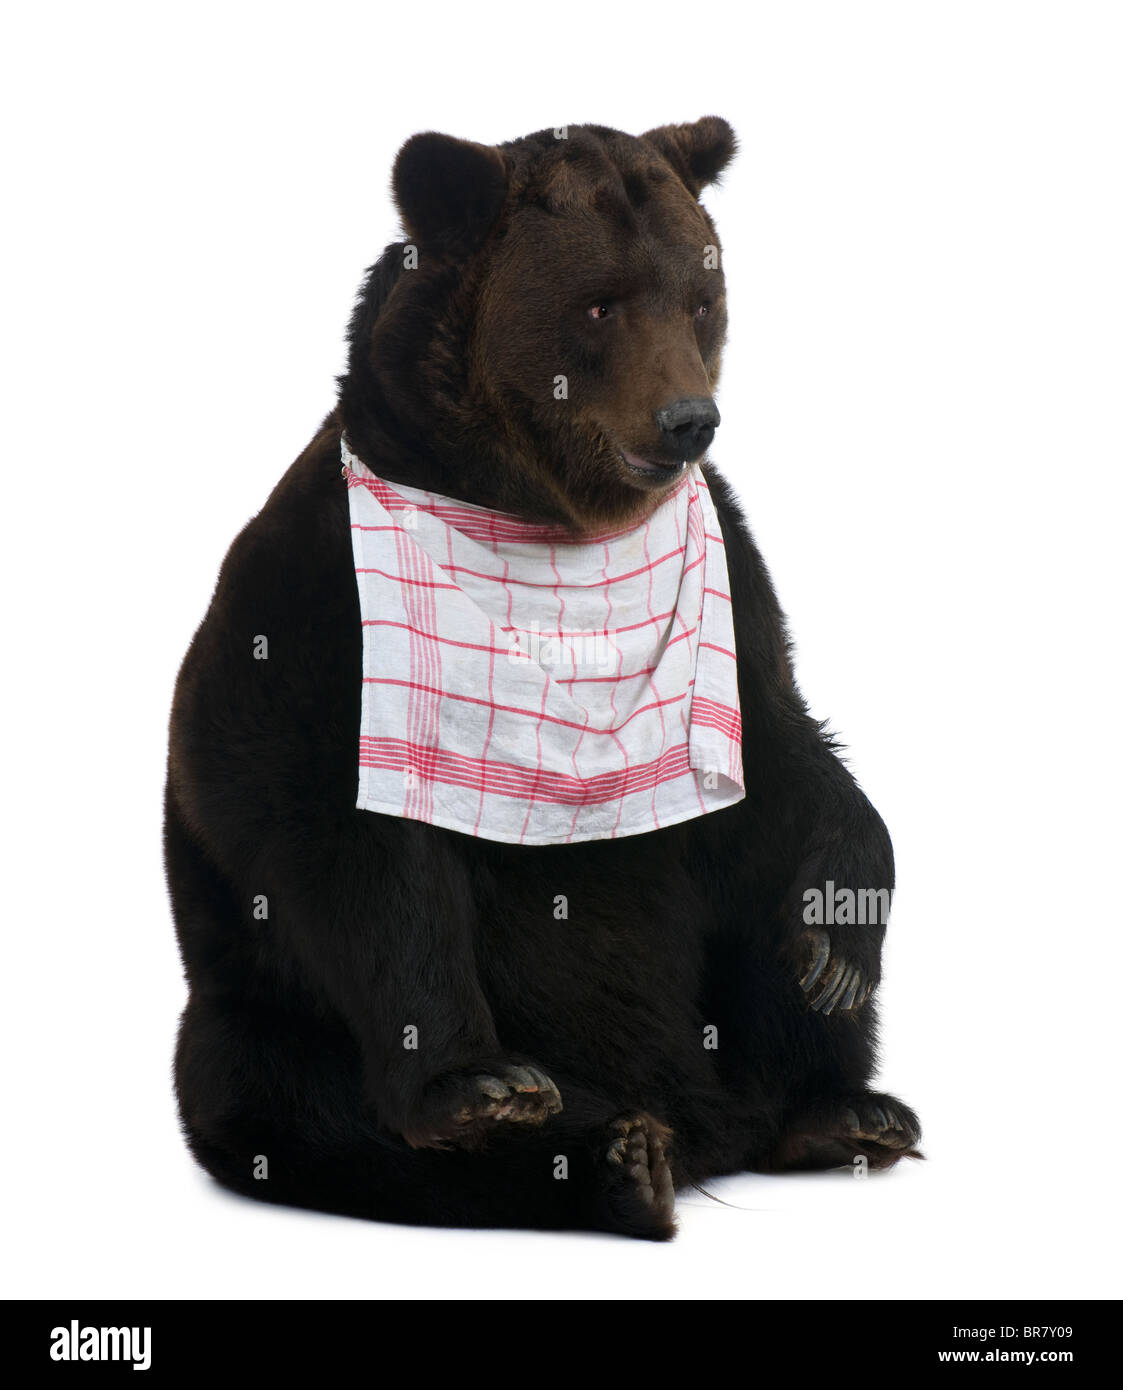 Siberian Brown Bear, 12 years old, sitting with bib on in front of white background - Stock Image